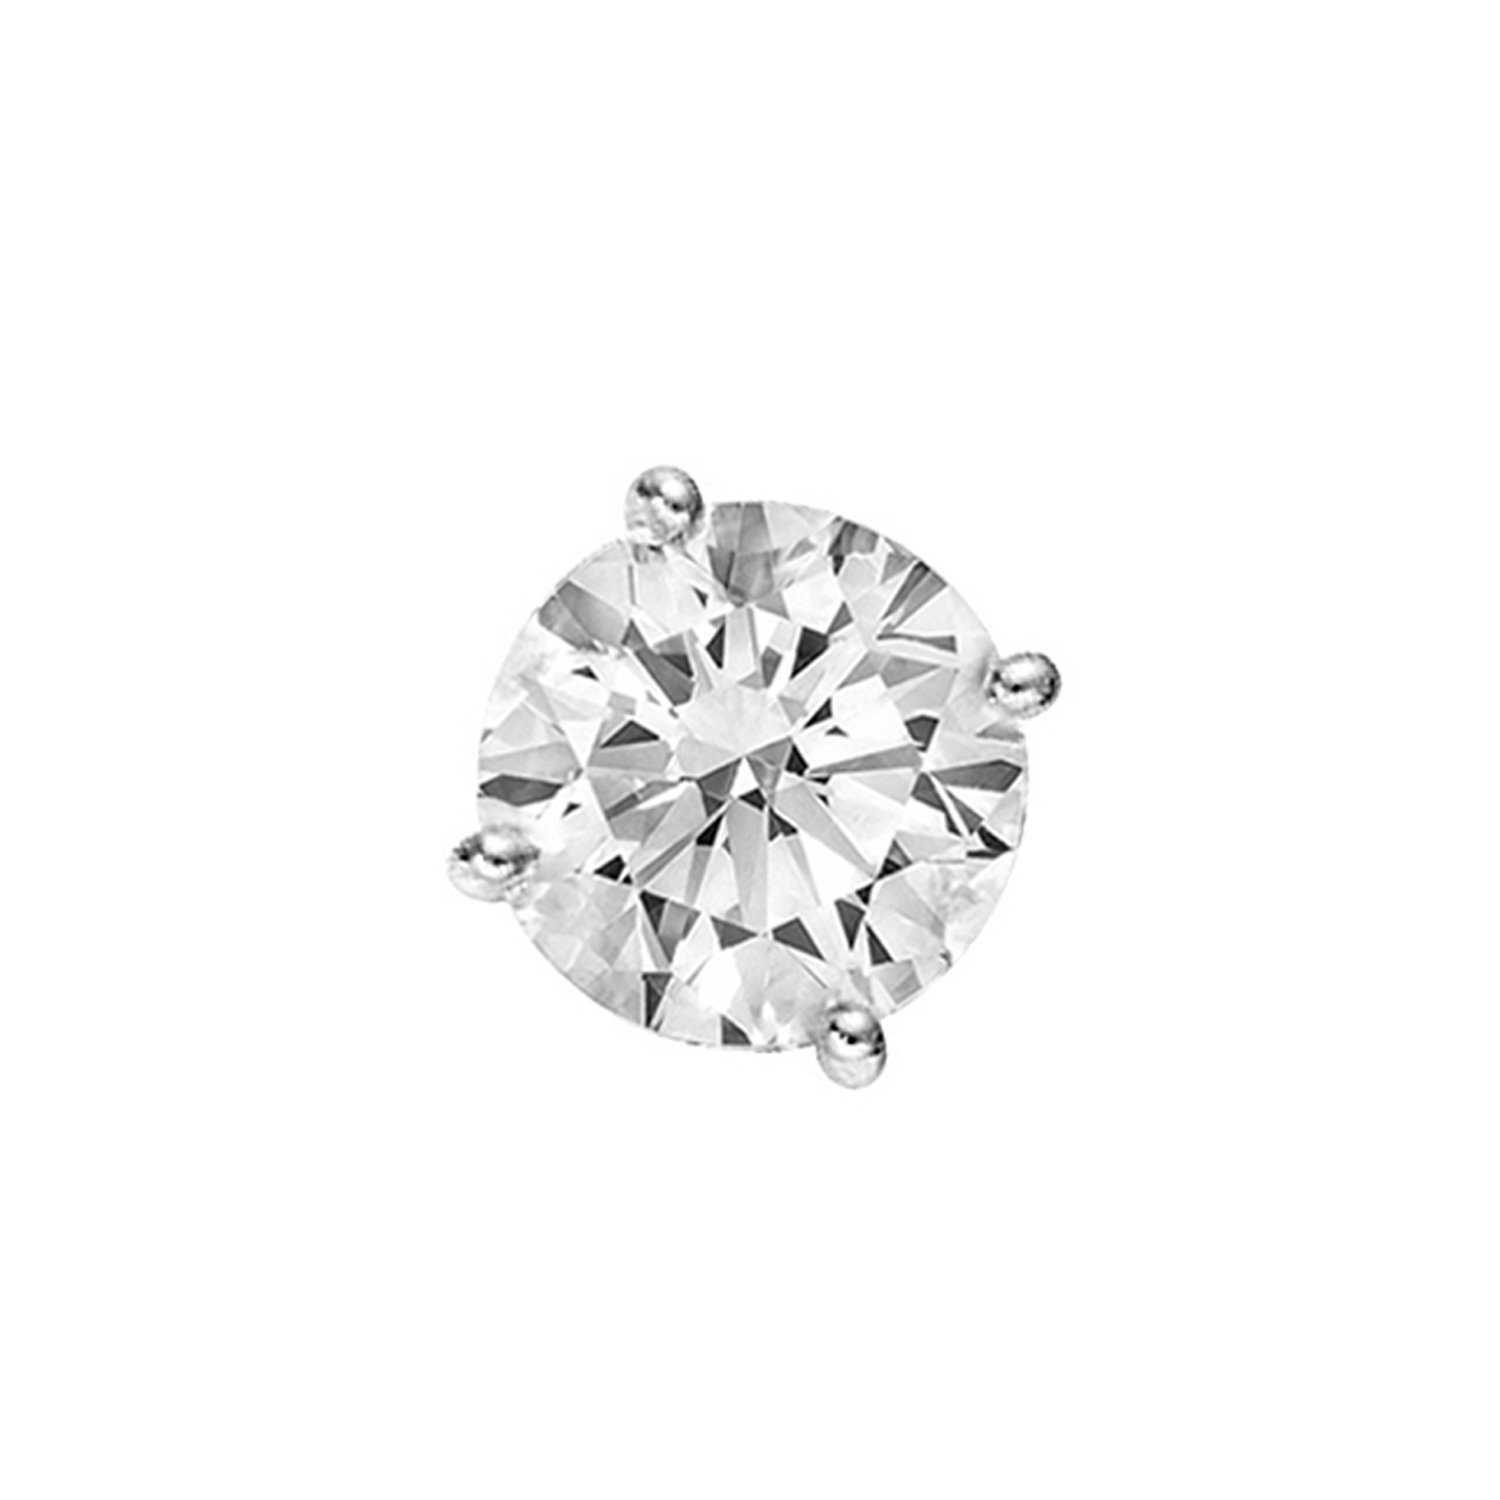 IGI Certified 4-Prong Setting Round Cut Diamond Stud Earrings in 14K White Gold (0.16 Carat)